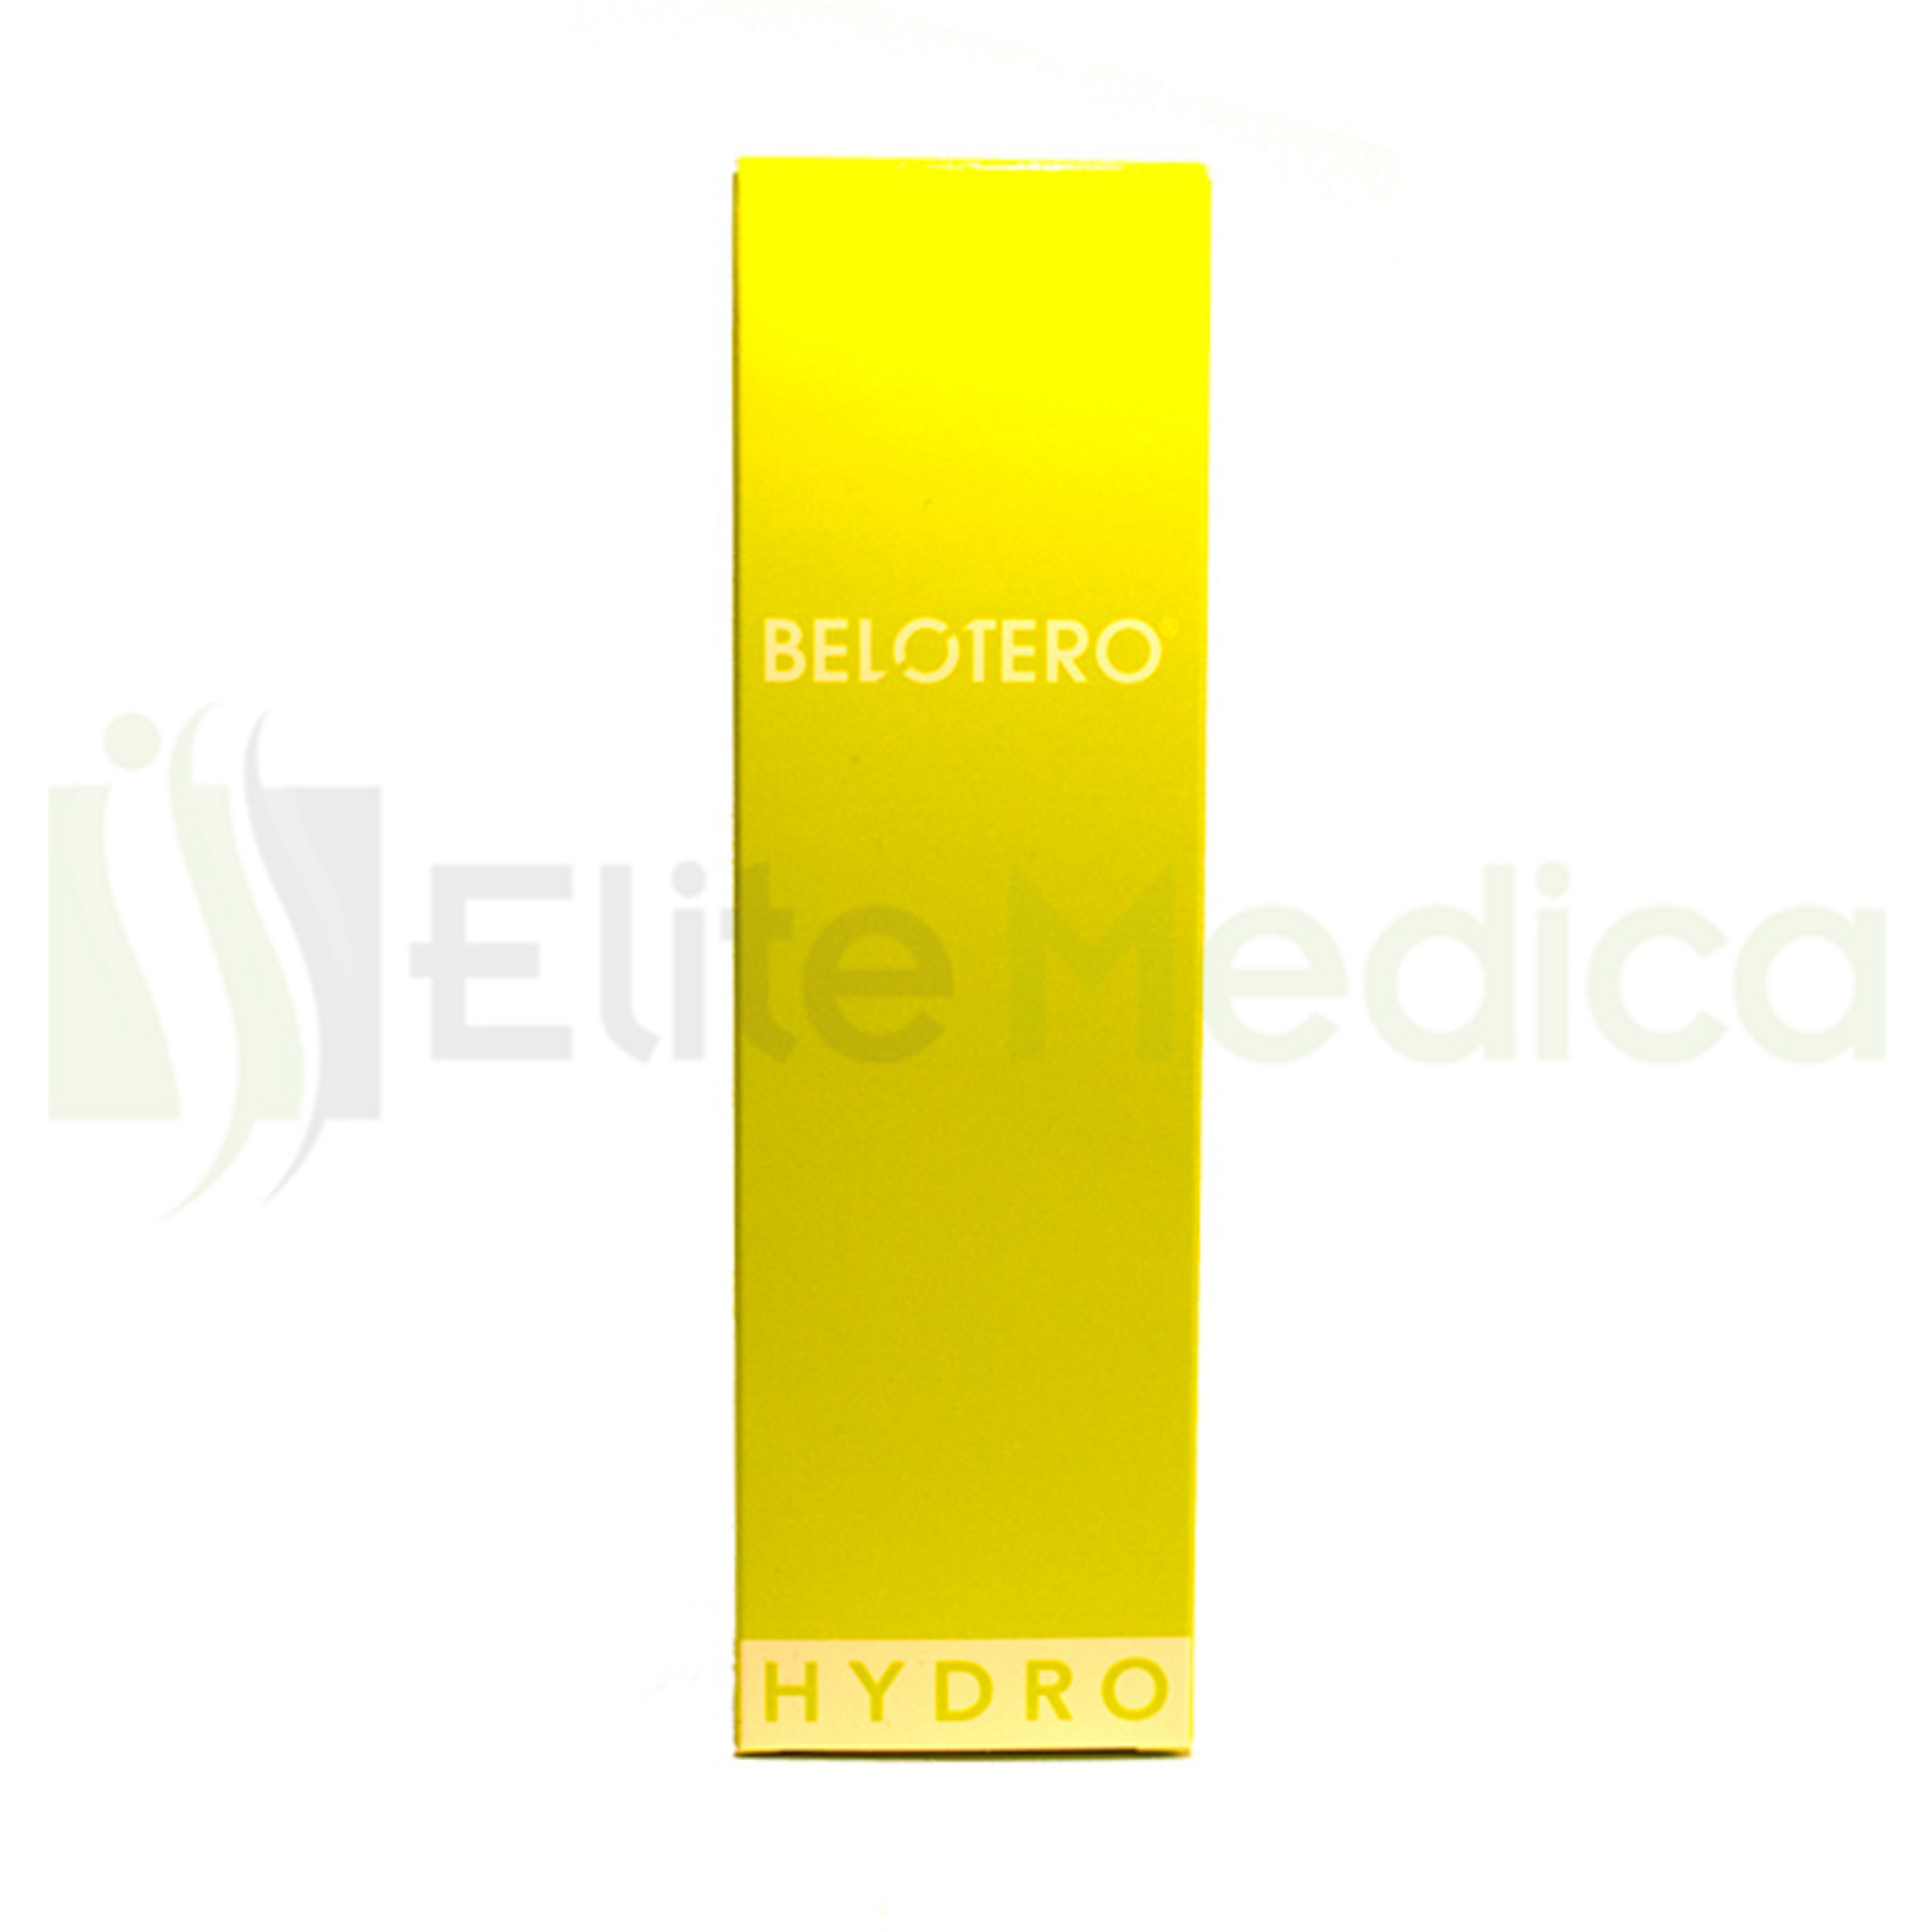 belotero hydro original product